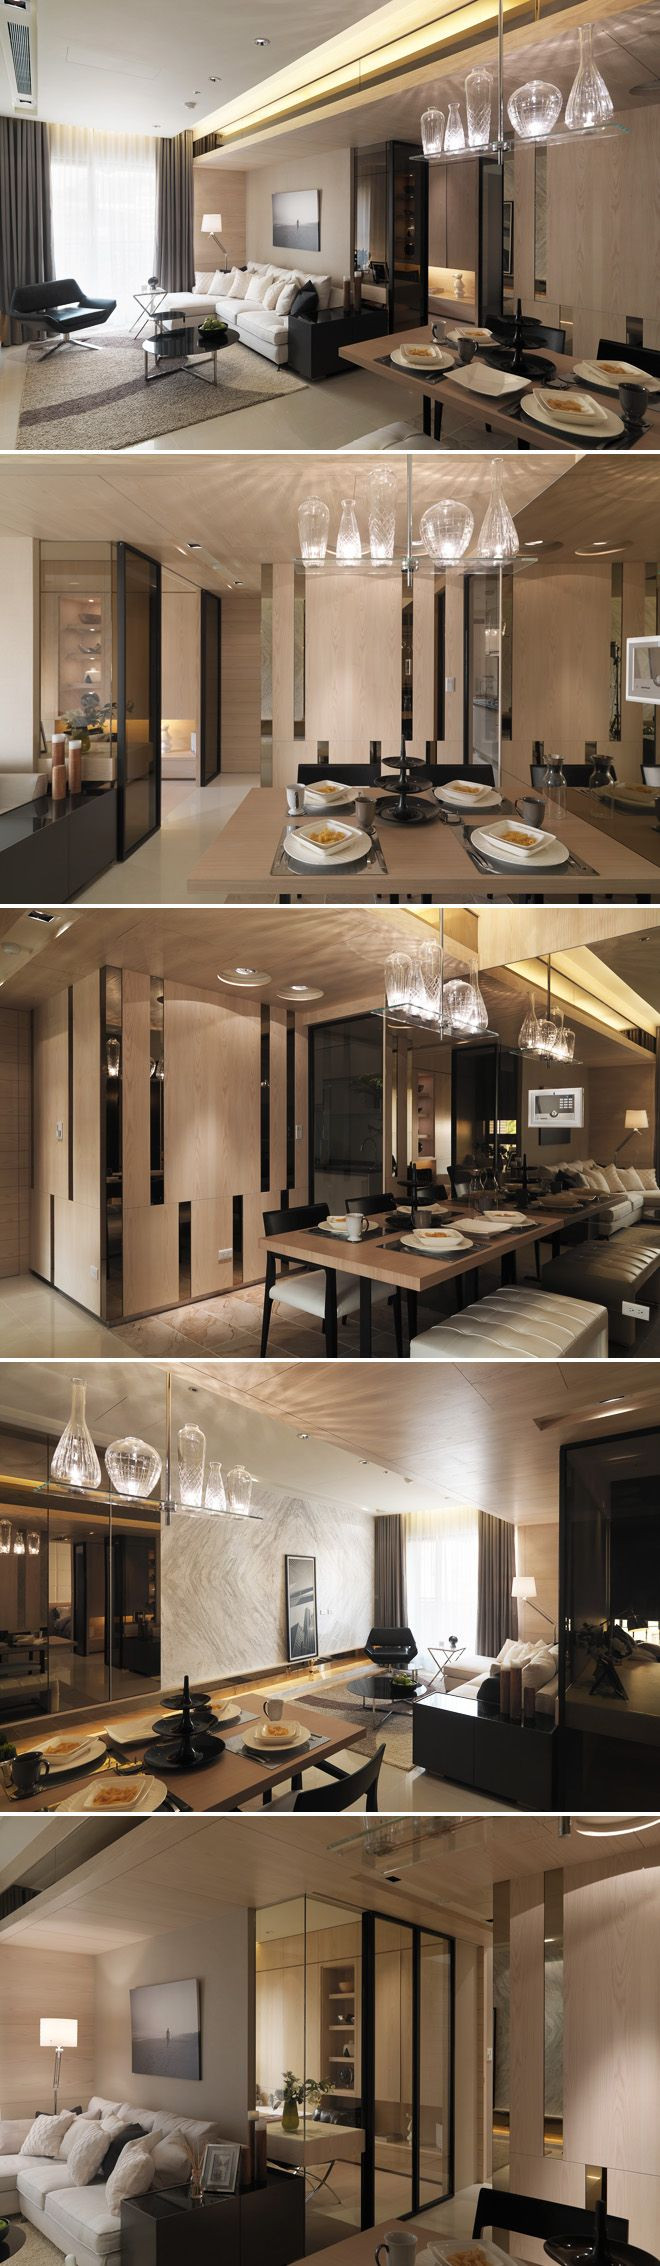 Contemporary Design + Architecture Interior ::Fantasia interior